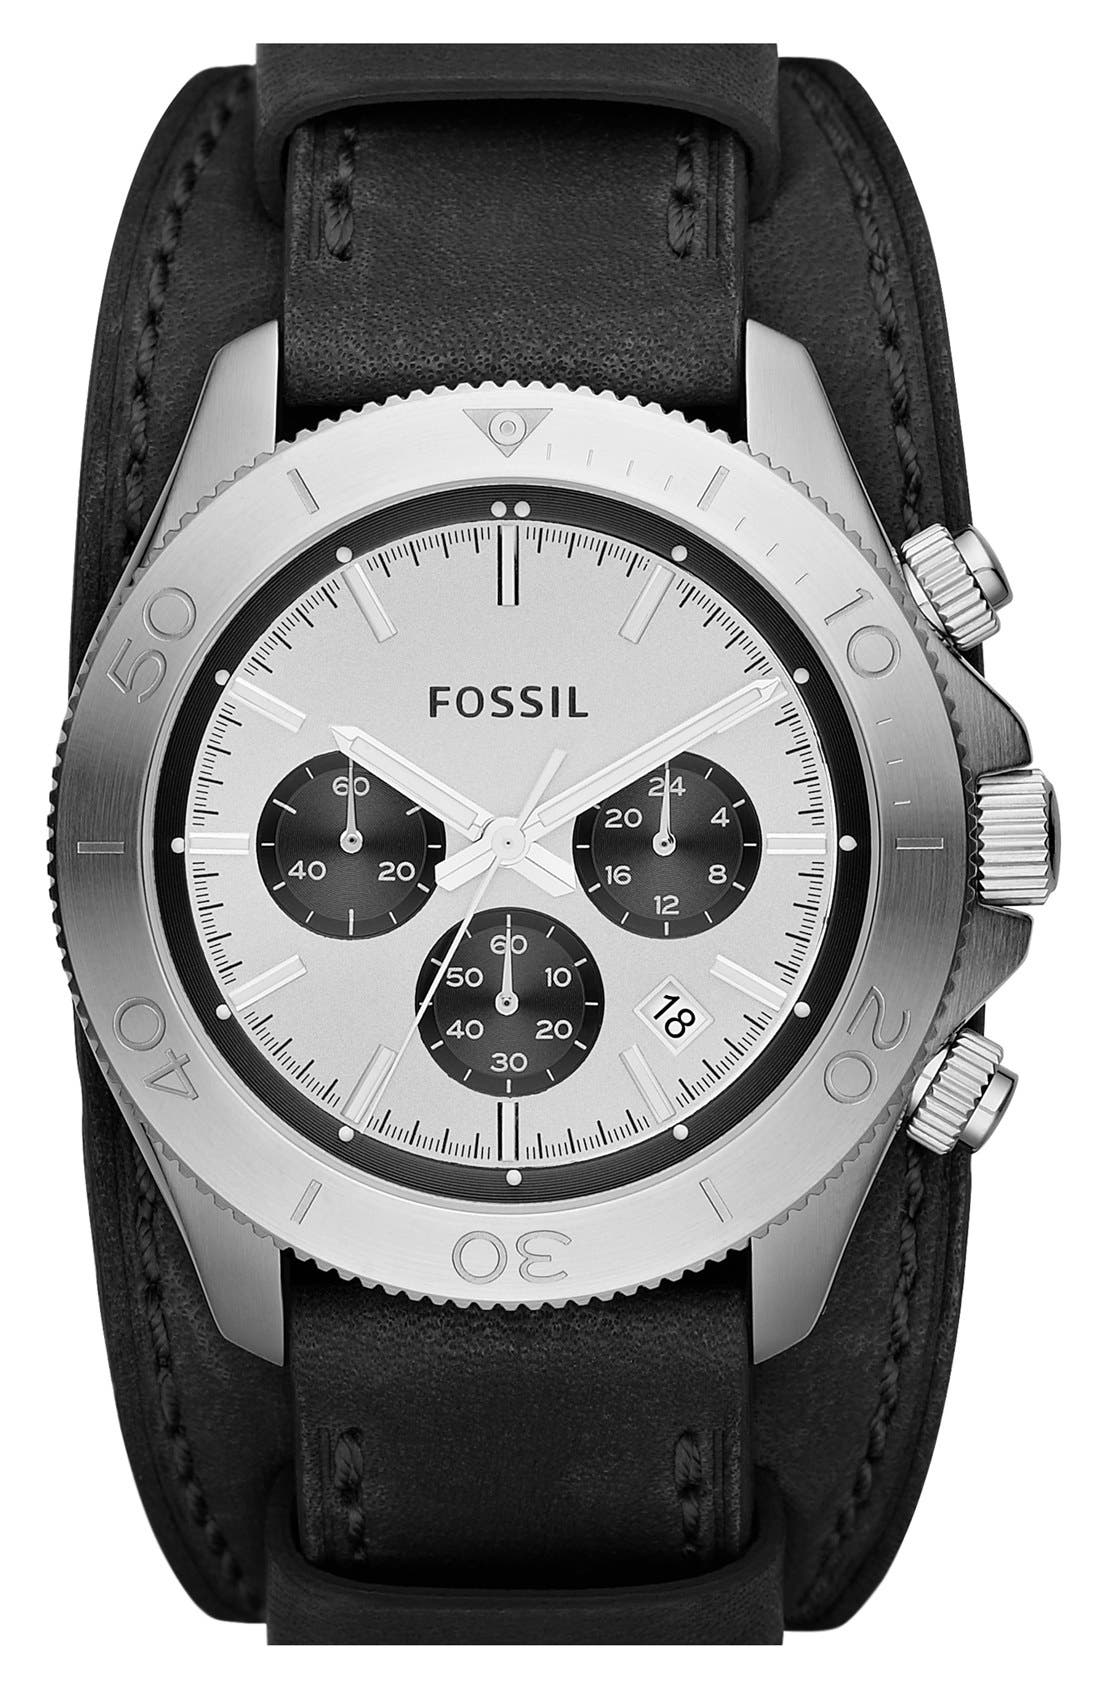 Main Image - Fossil 'Retro Traveler' Chronograph Leather Cuff Watch, 45mm